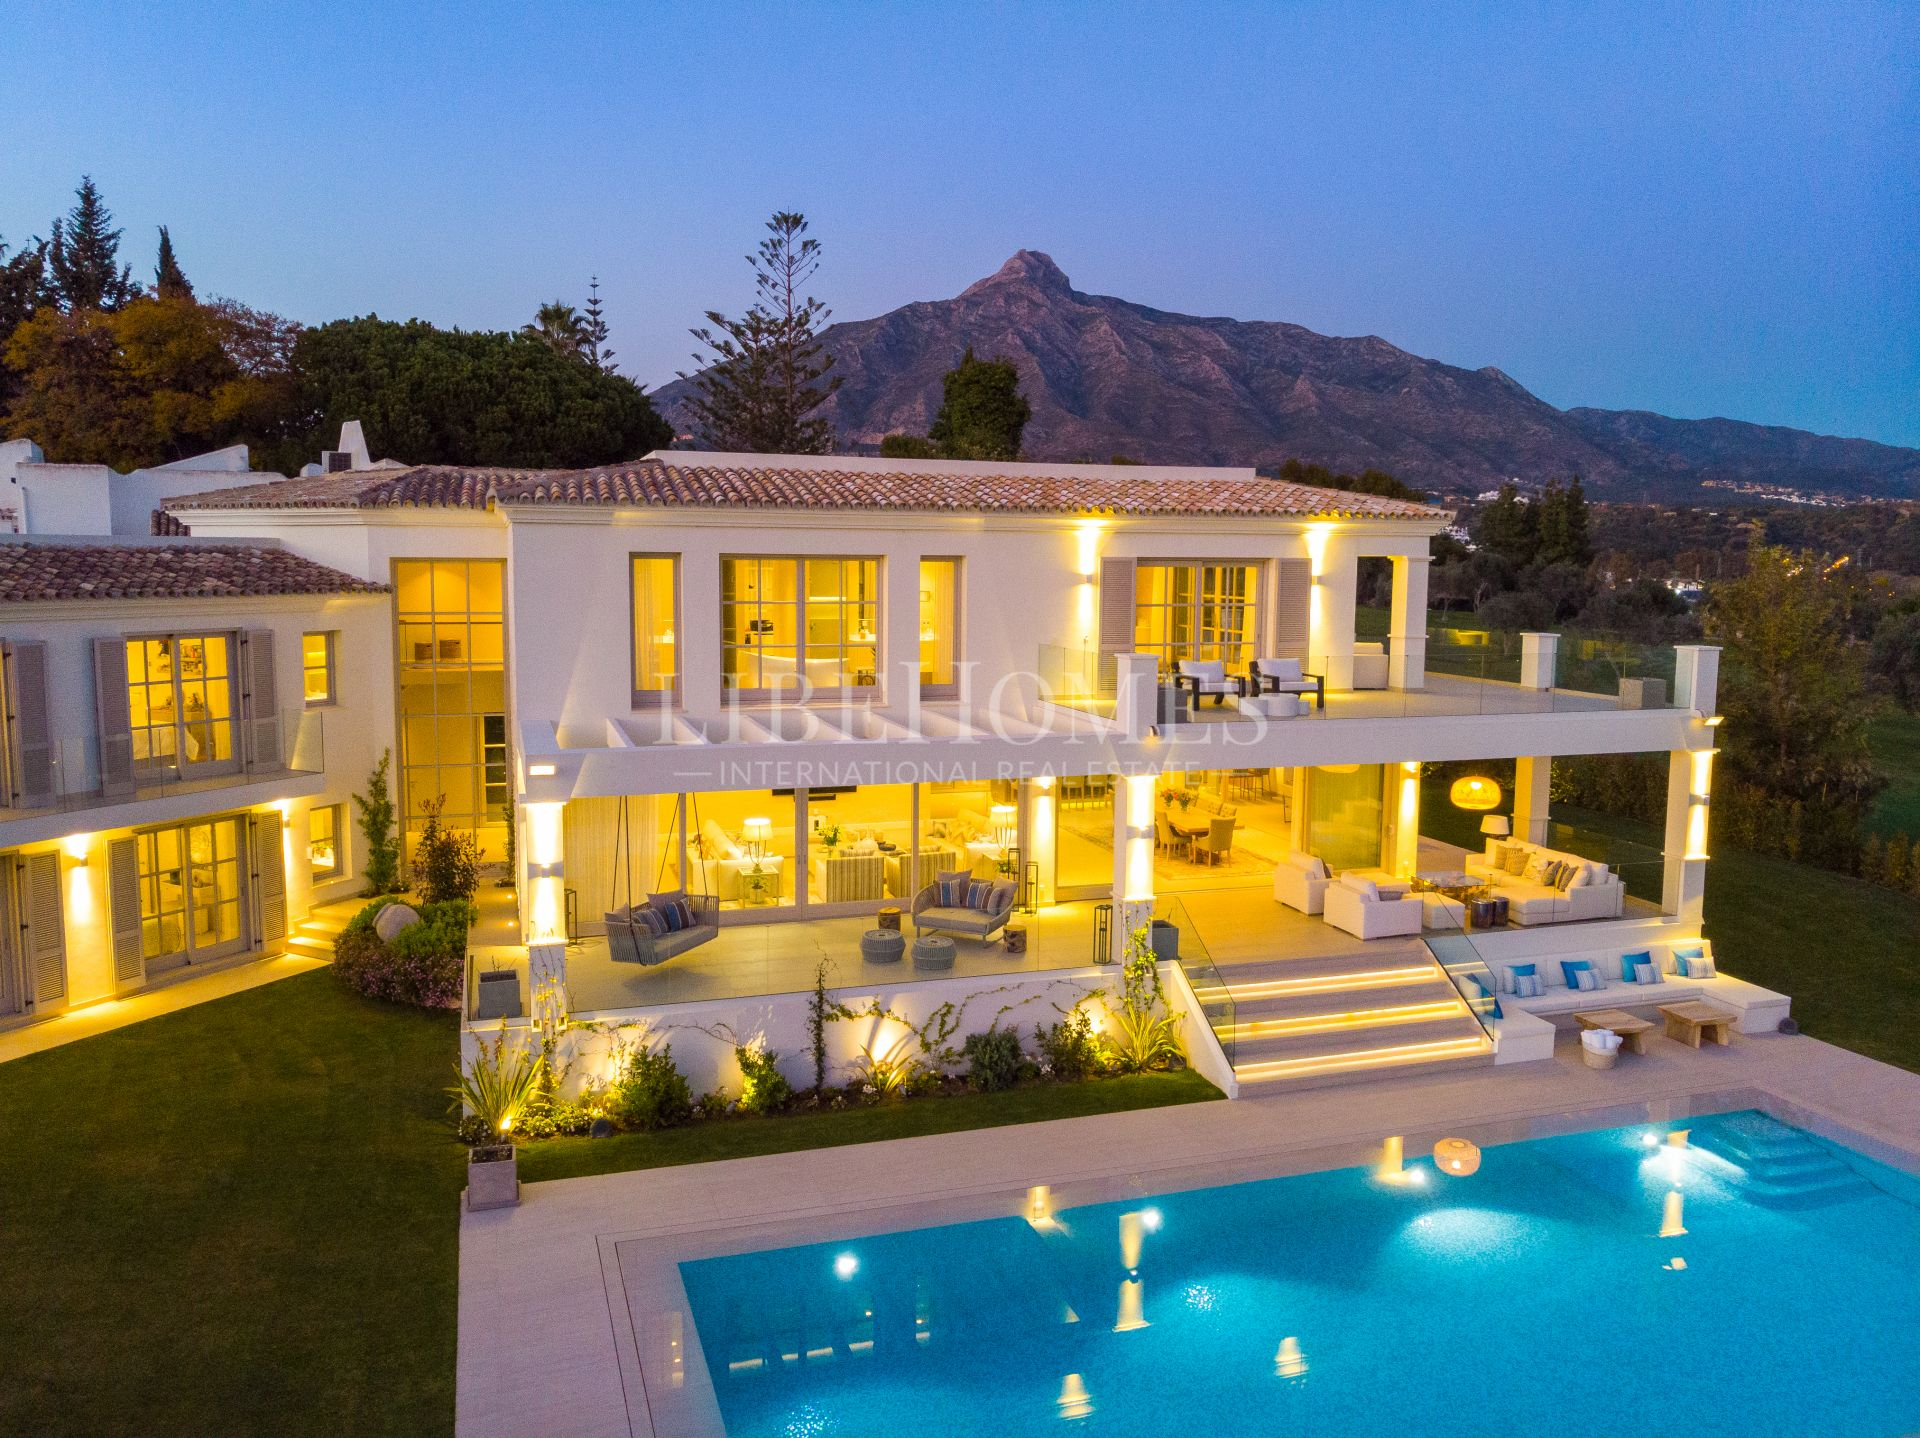 Villa for sale in Aloha, Marbella Nueva Andalucia